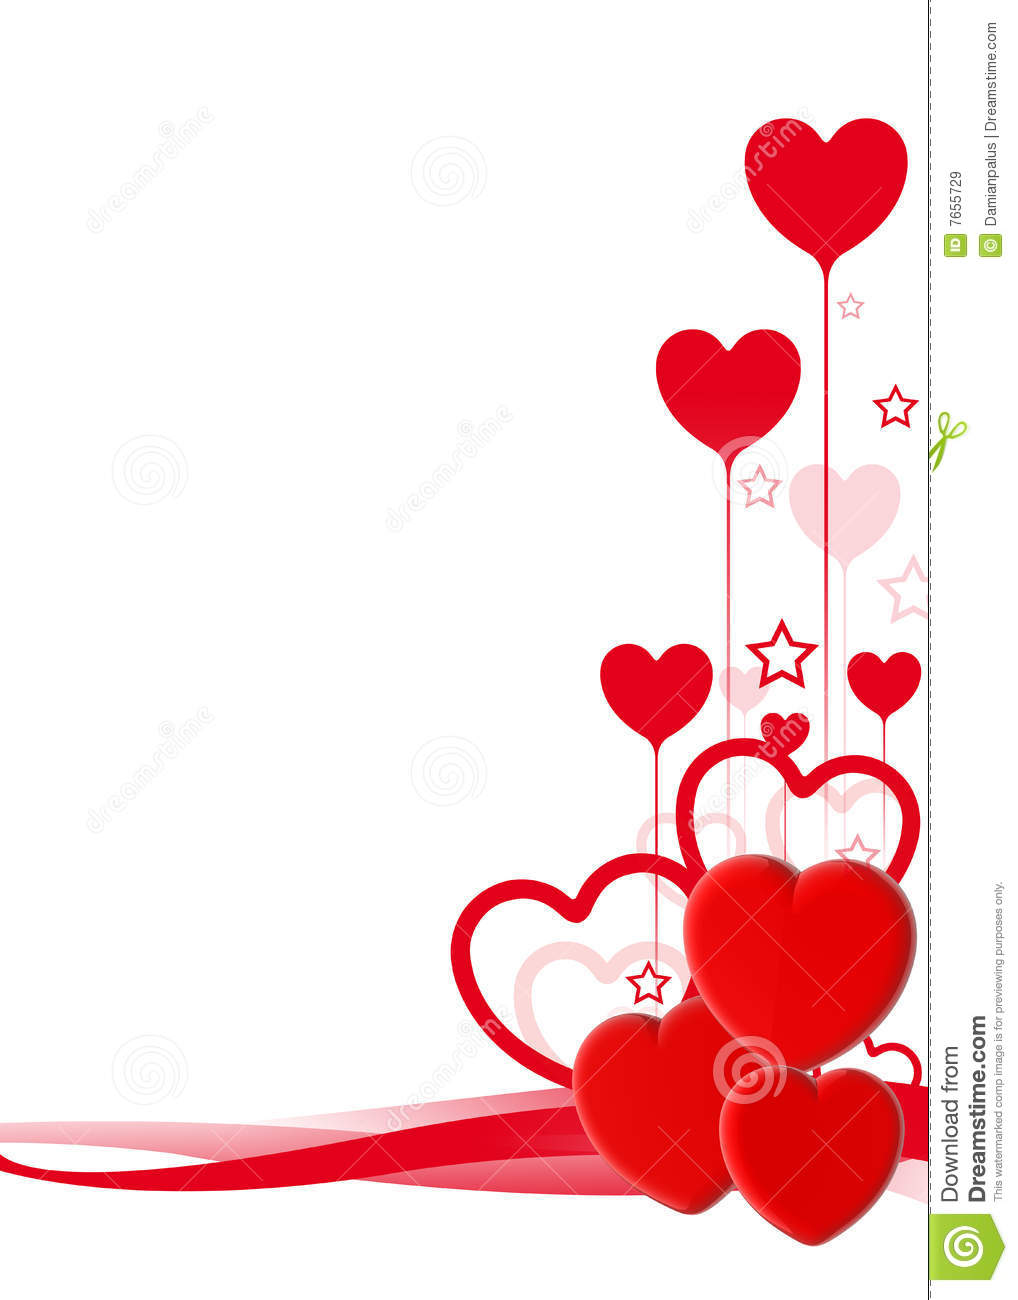 valentines day background clipart - photo #32